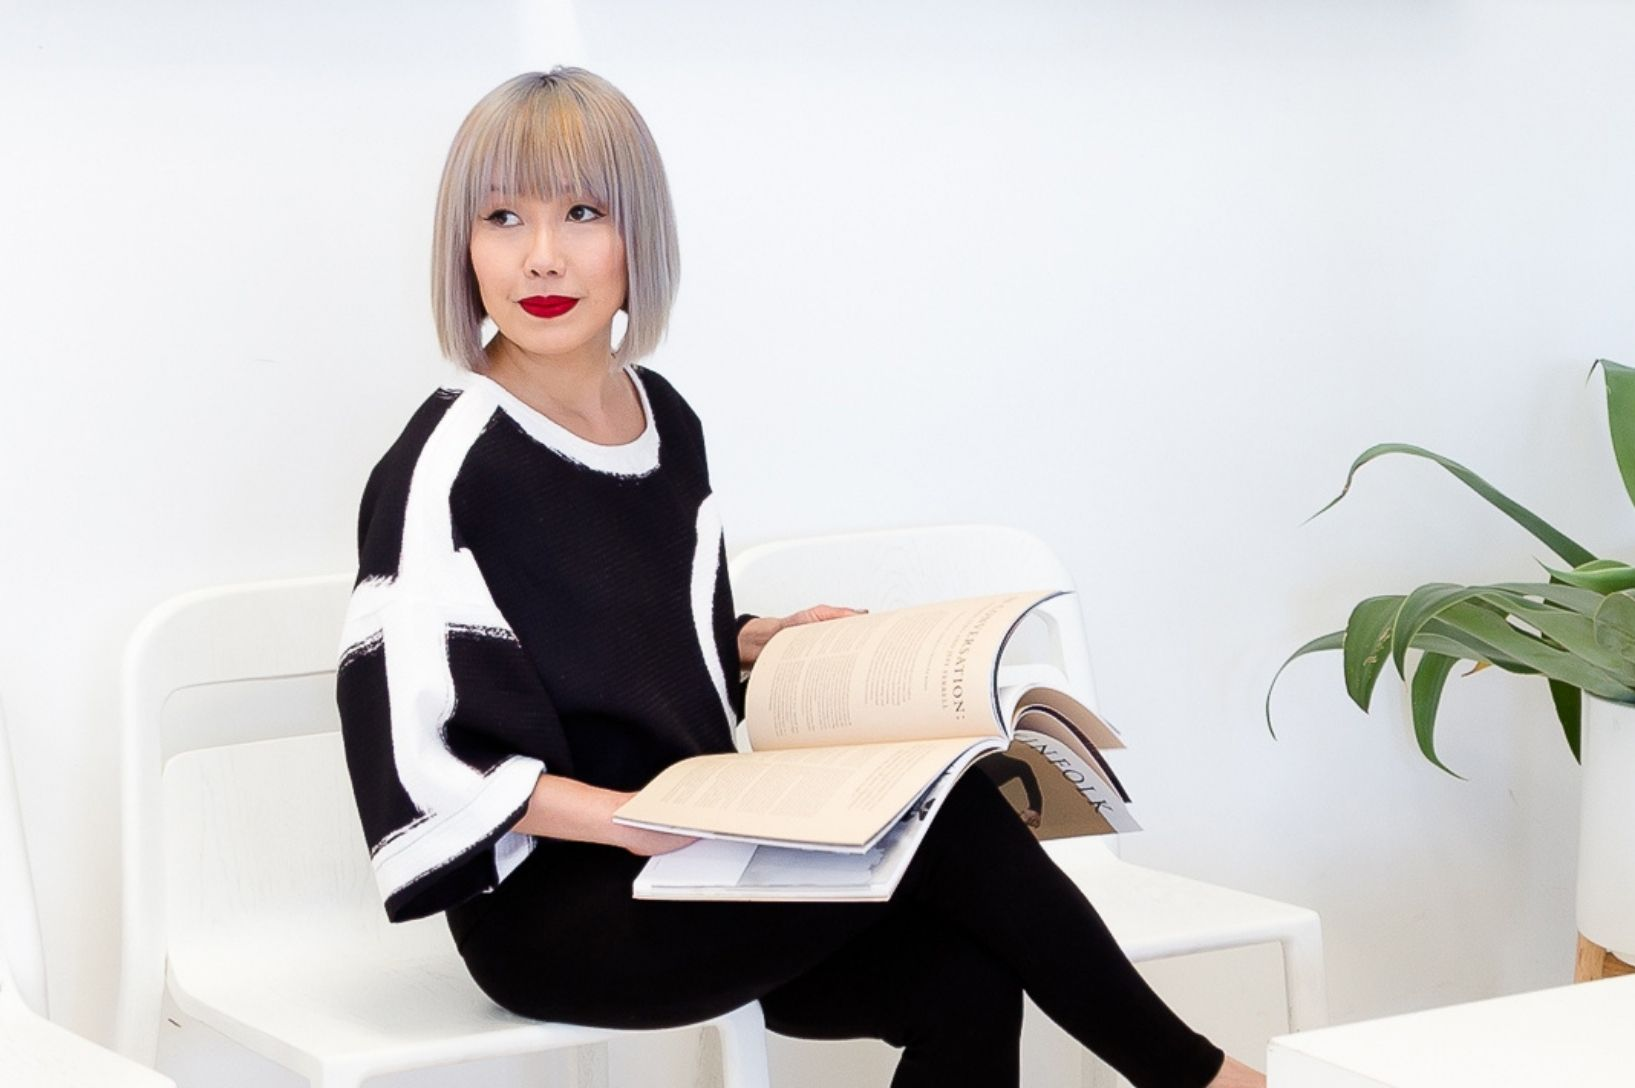 Slowing down corporate fashion with Jacalin Ding of The Rushing Hour